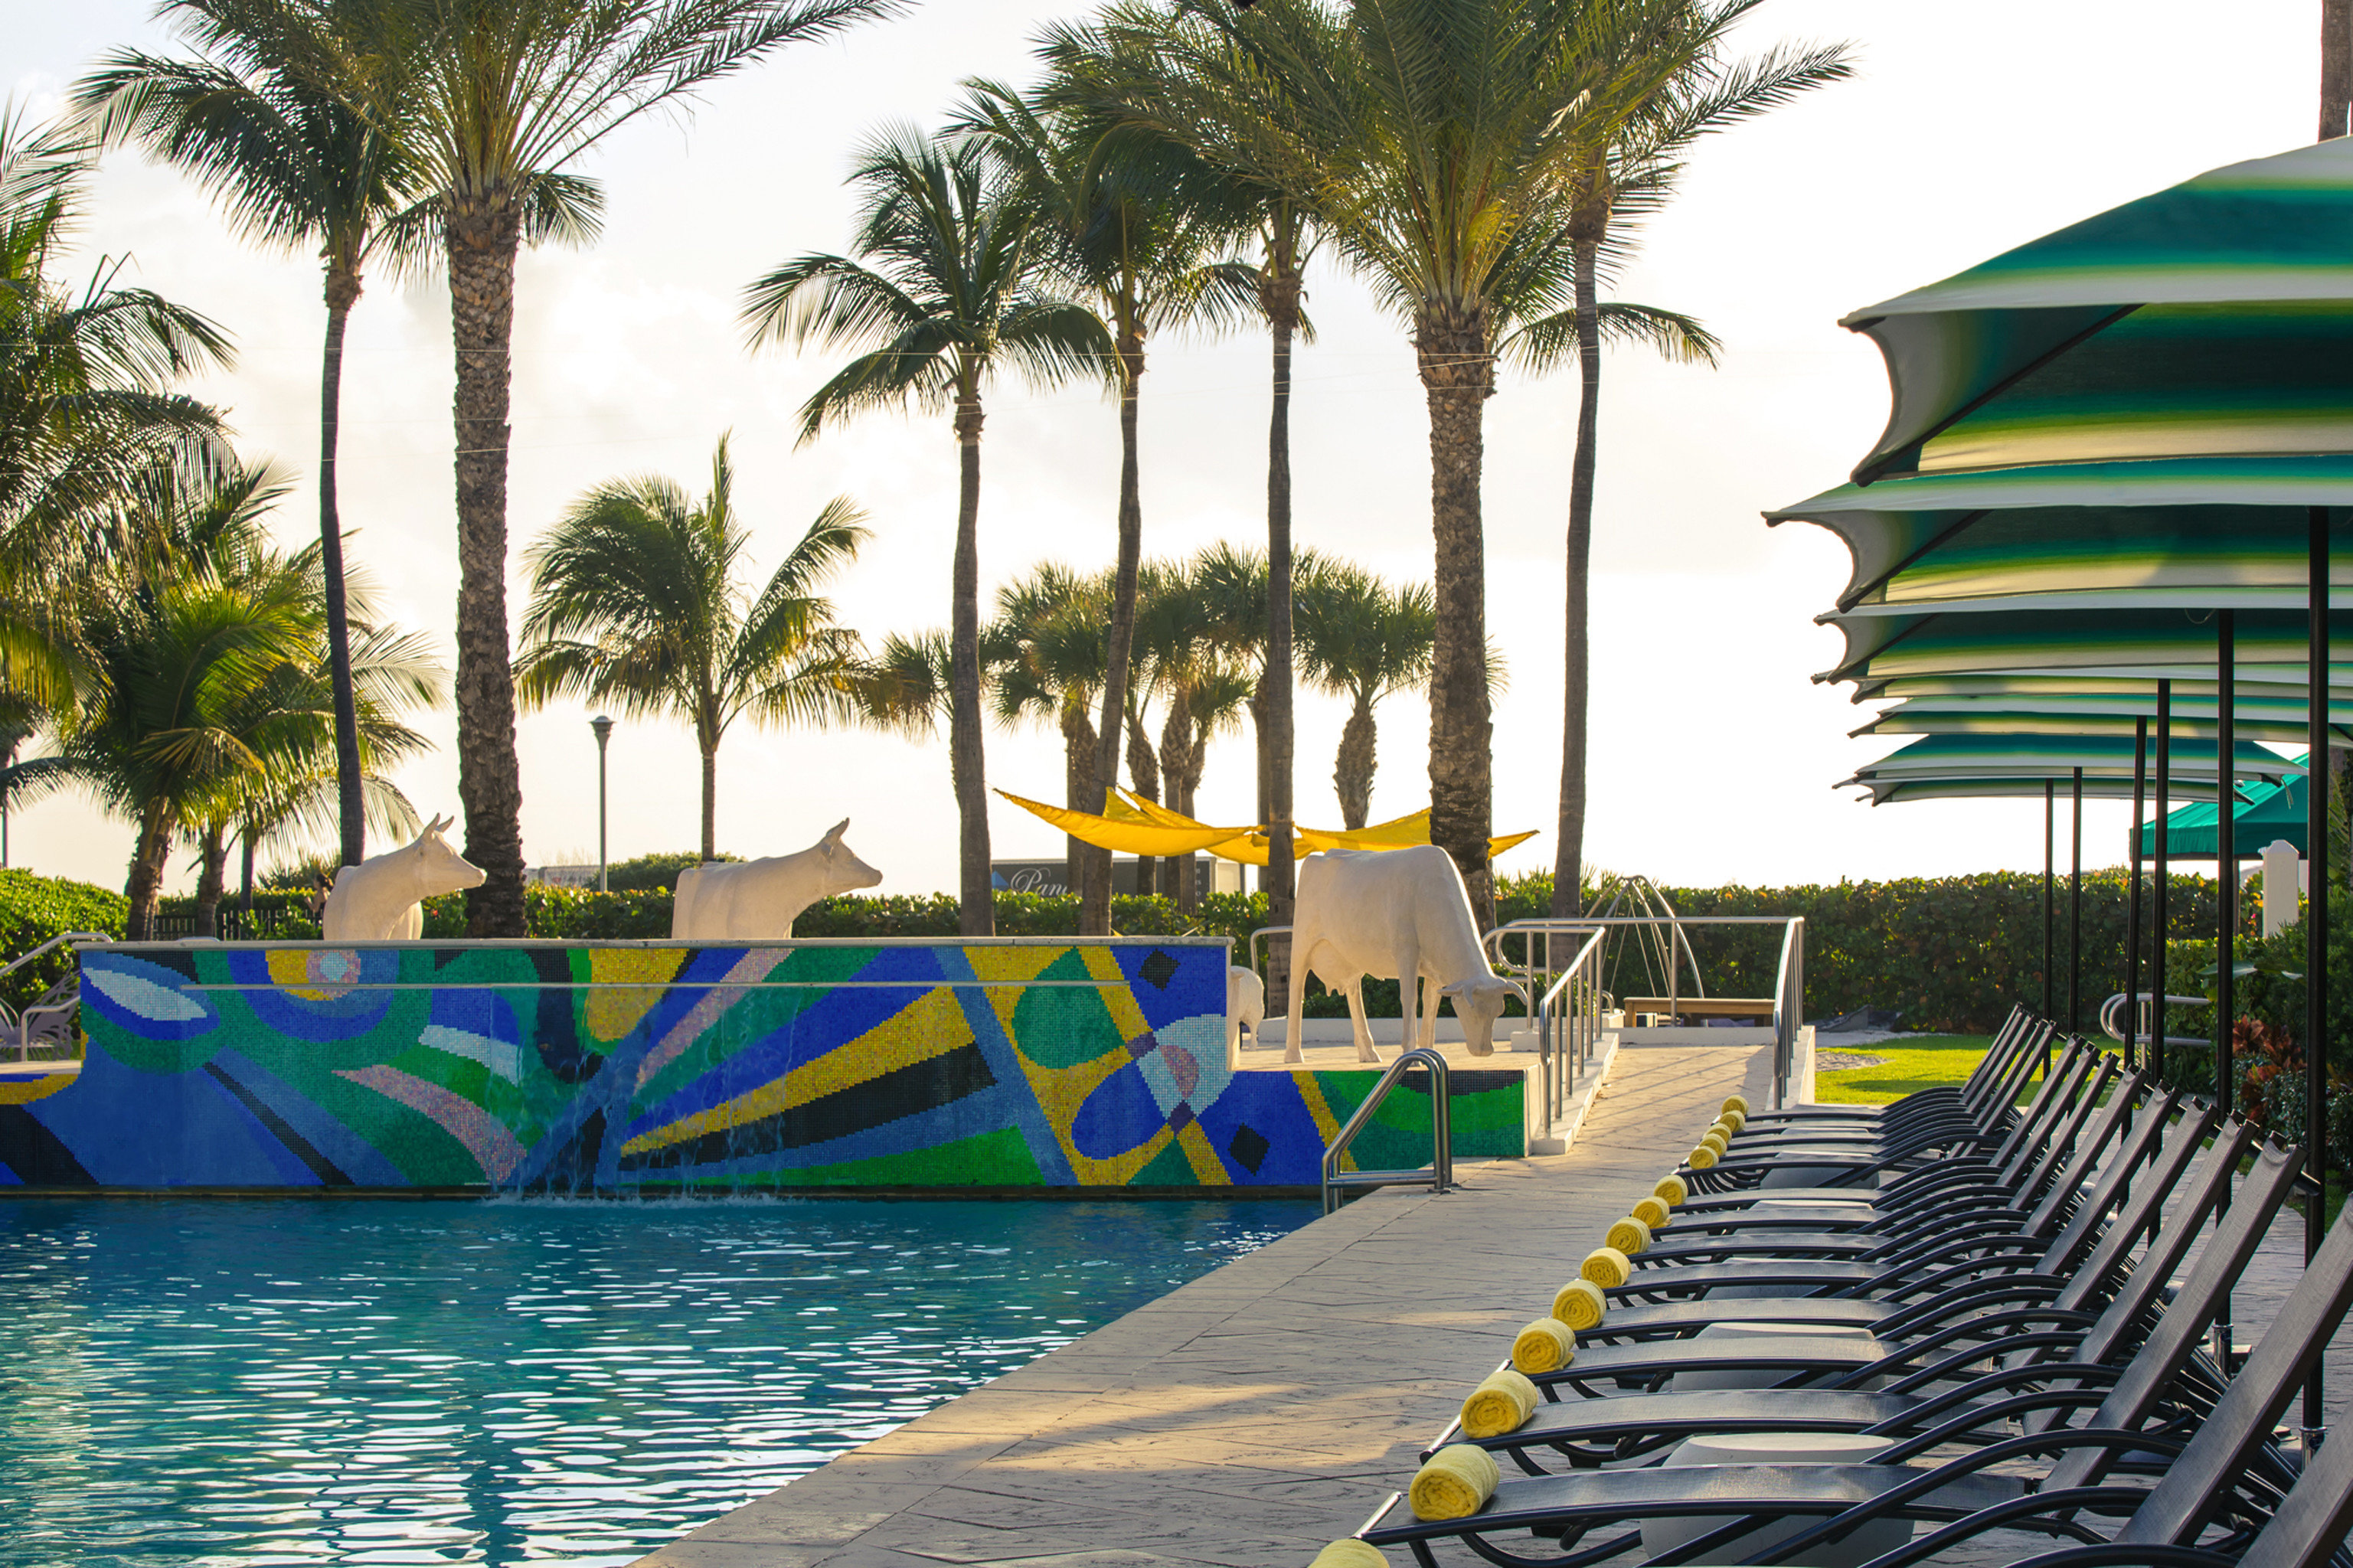 Outdoors Play Pool Resort tree sky leisure swimming pool palm arecales Water park park condominium colorful amusement park caribbean dock lined colored shade